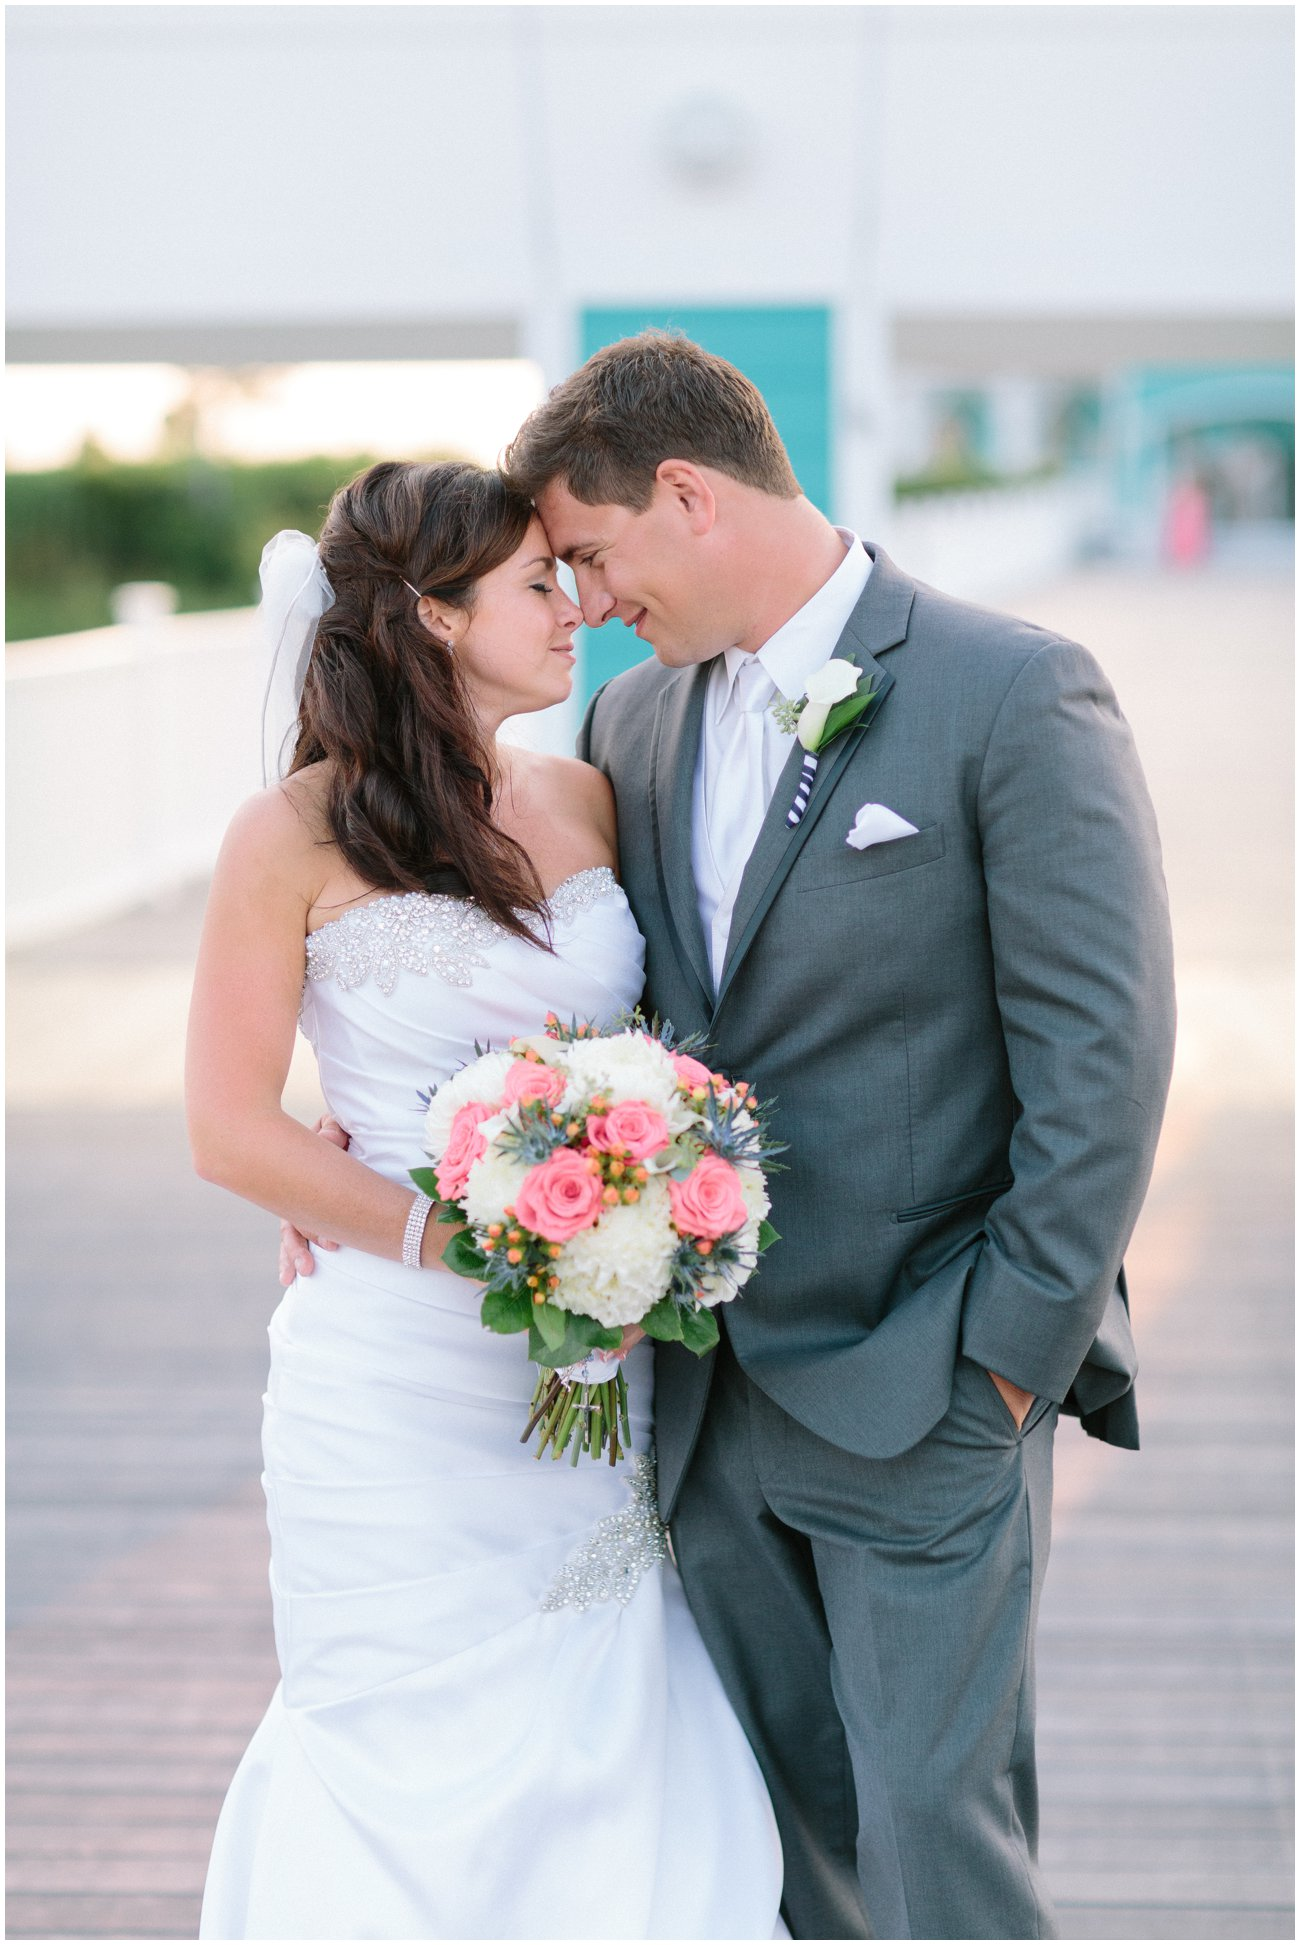 Aqua_Kings_Creek_Marina_Cape_Charles_Wedding_0023